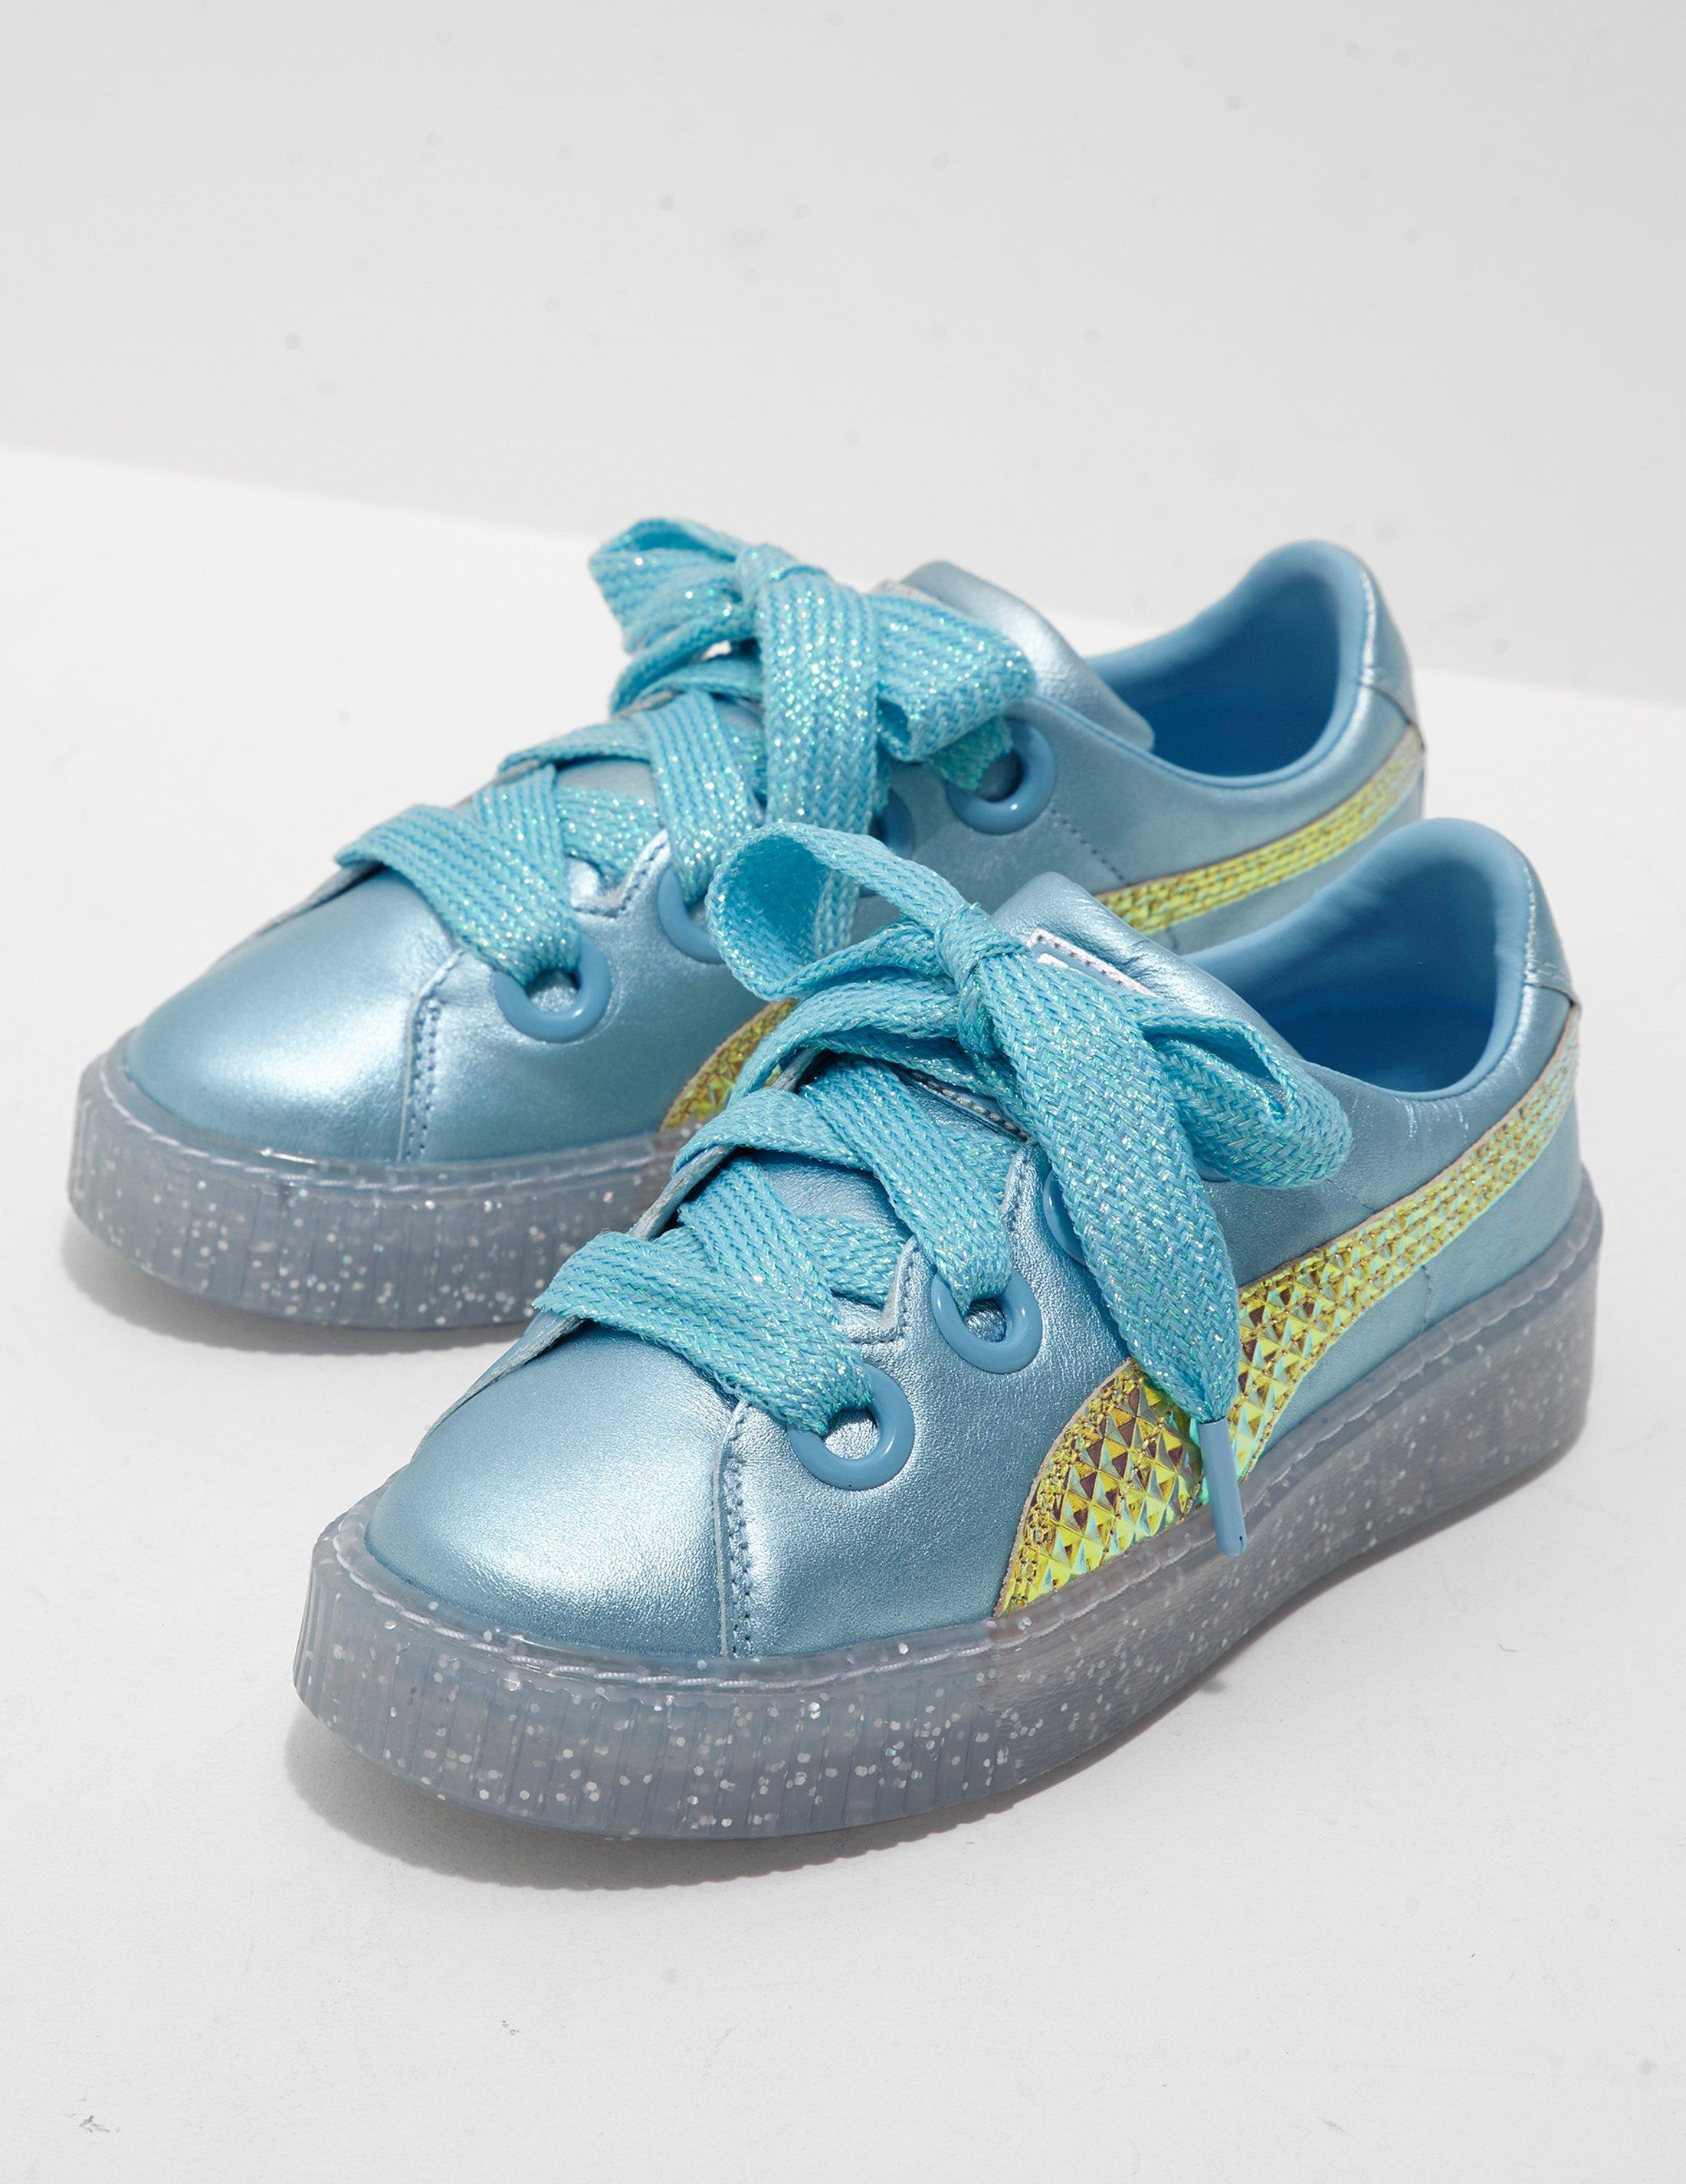 60ace1de664e2 Lyst - PUMA X Sophia Webster Glitter Princess Trainers Blue in Blue ...